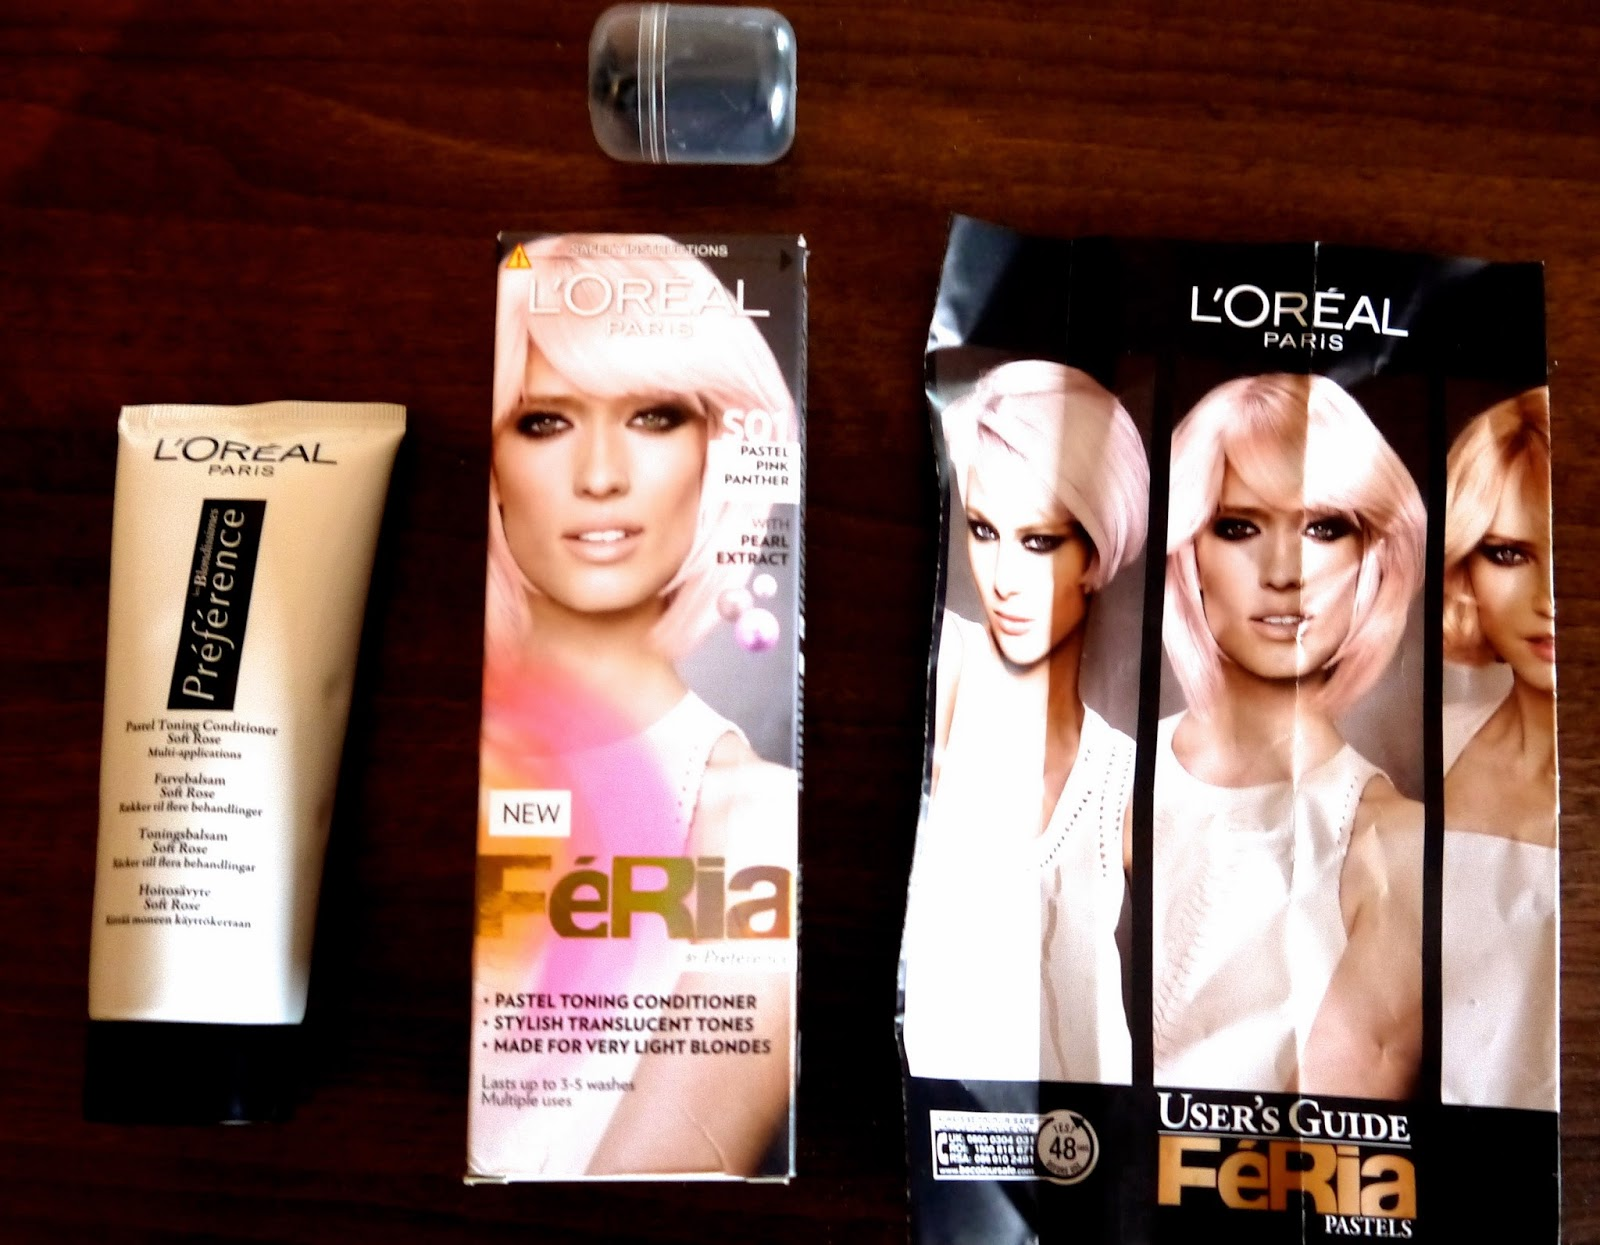 L'oreal Feria 'Pink Panther' review